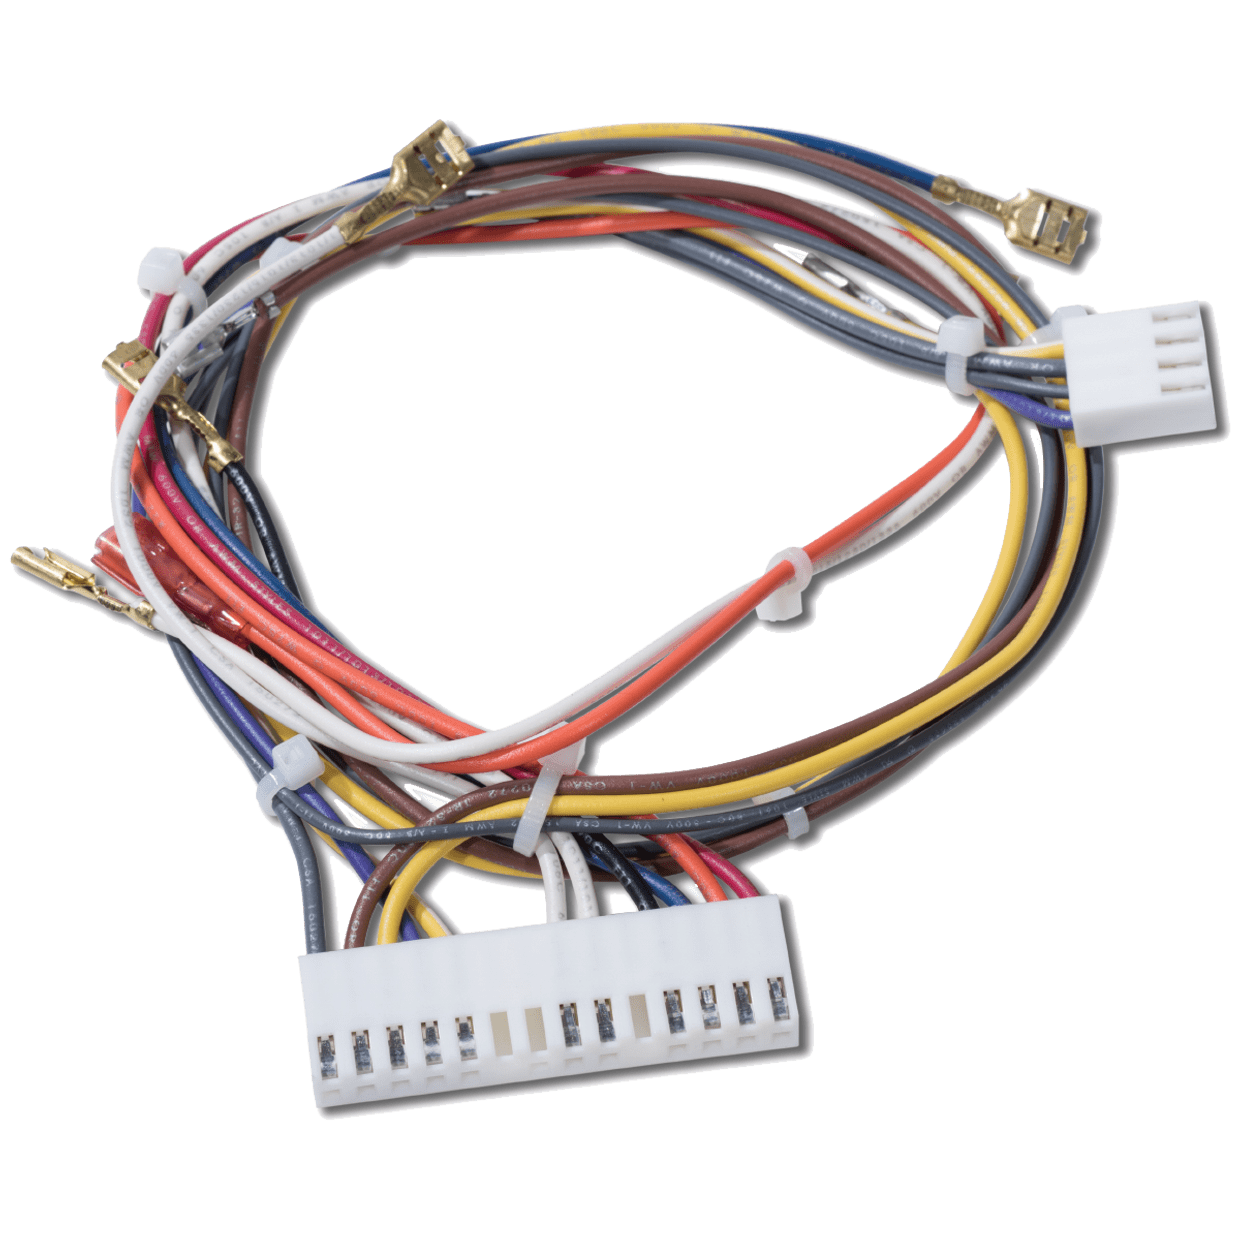 hight resolution of 041c4876 wire harness kit